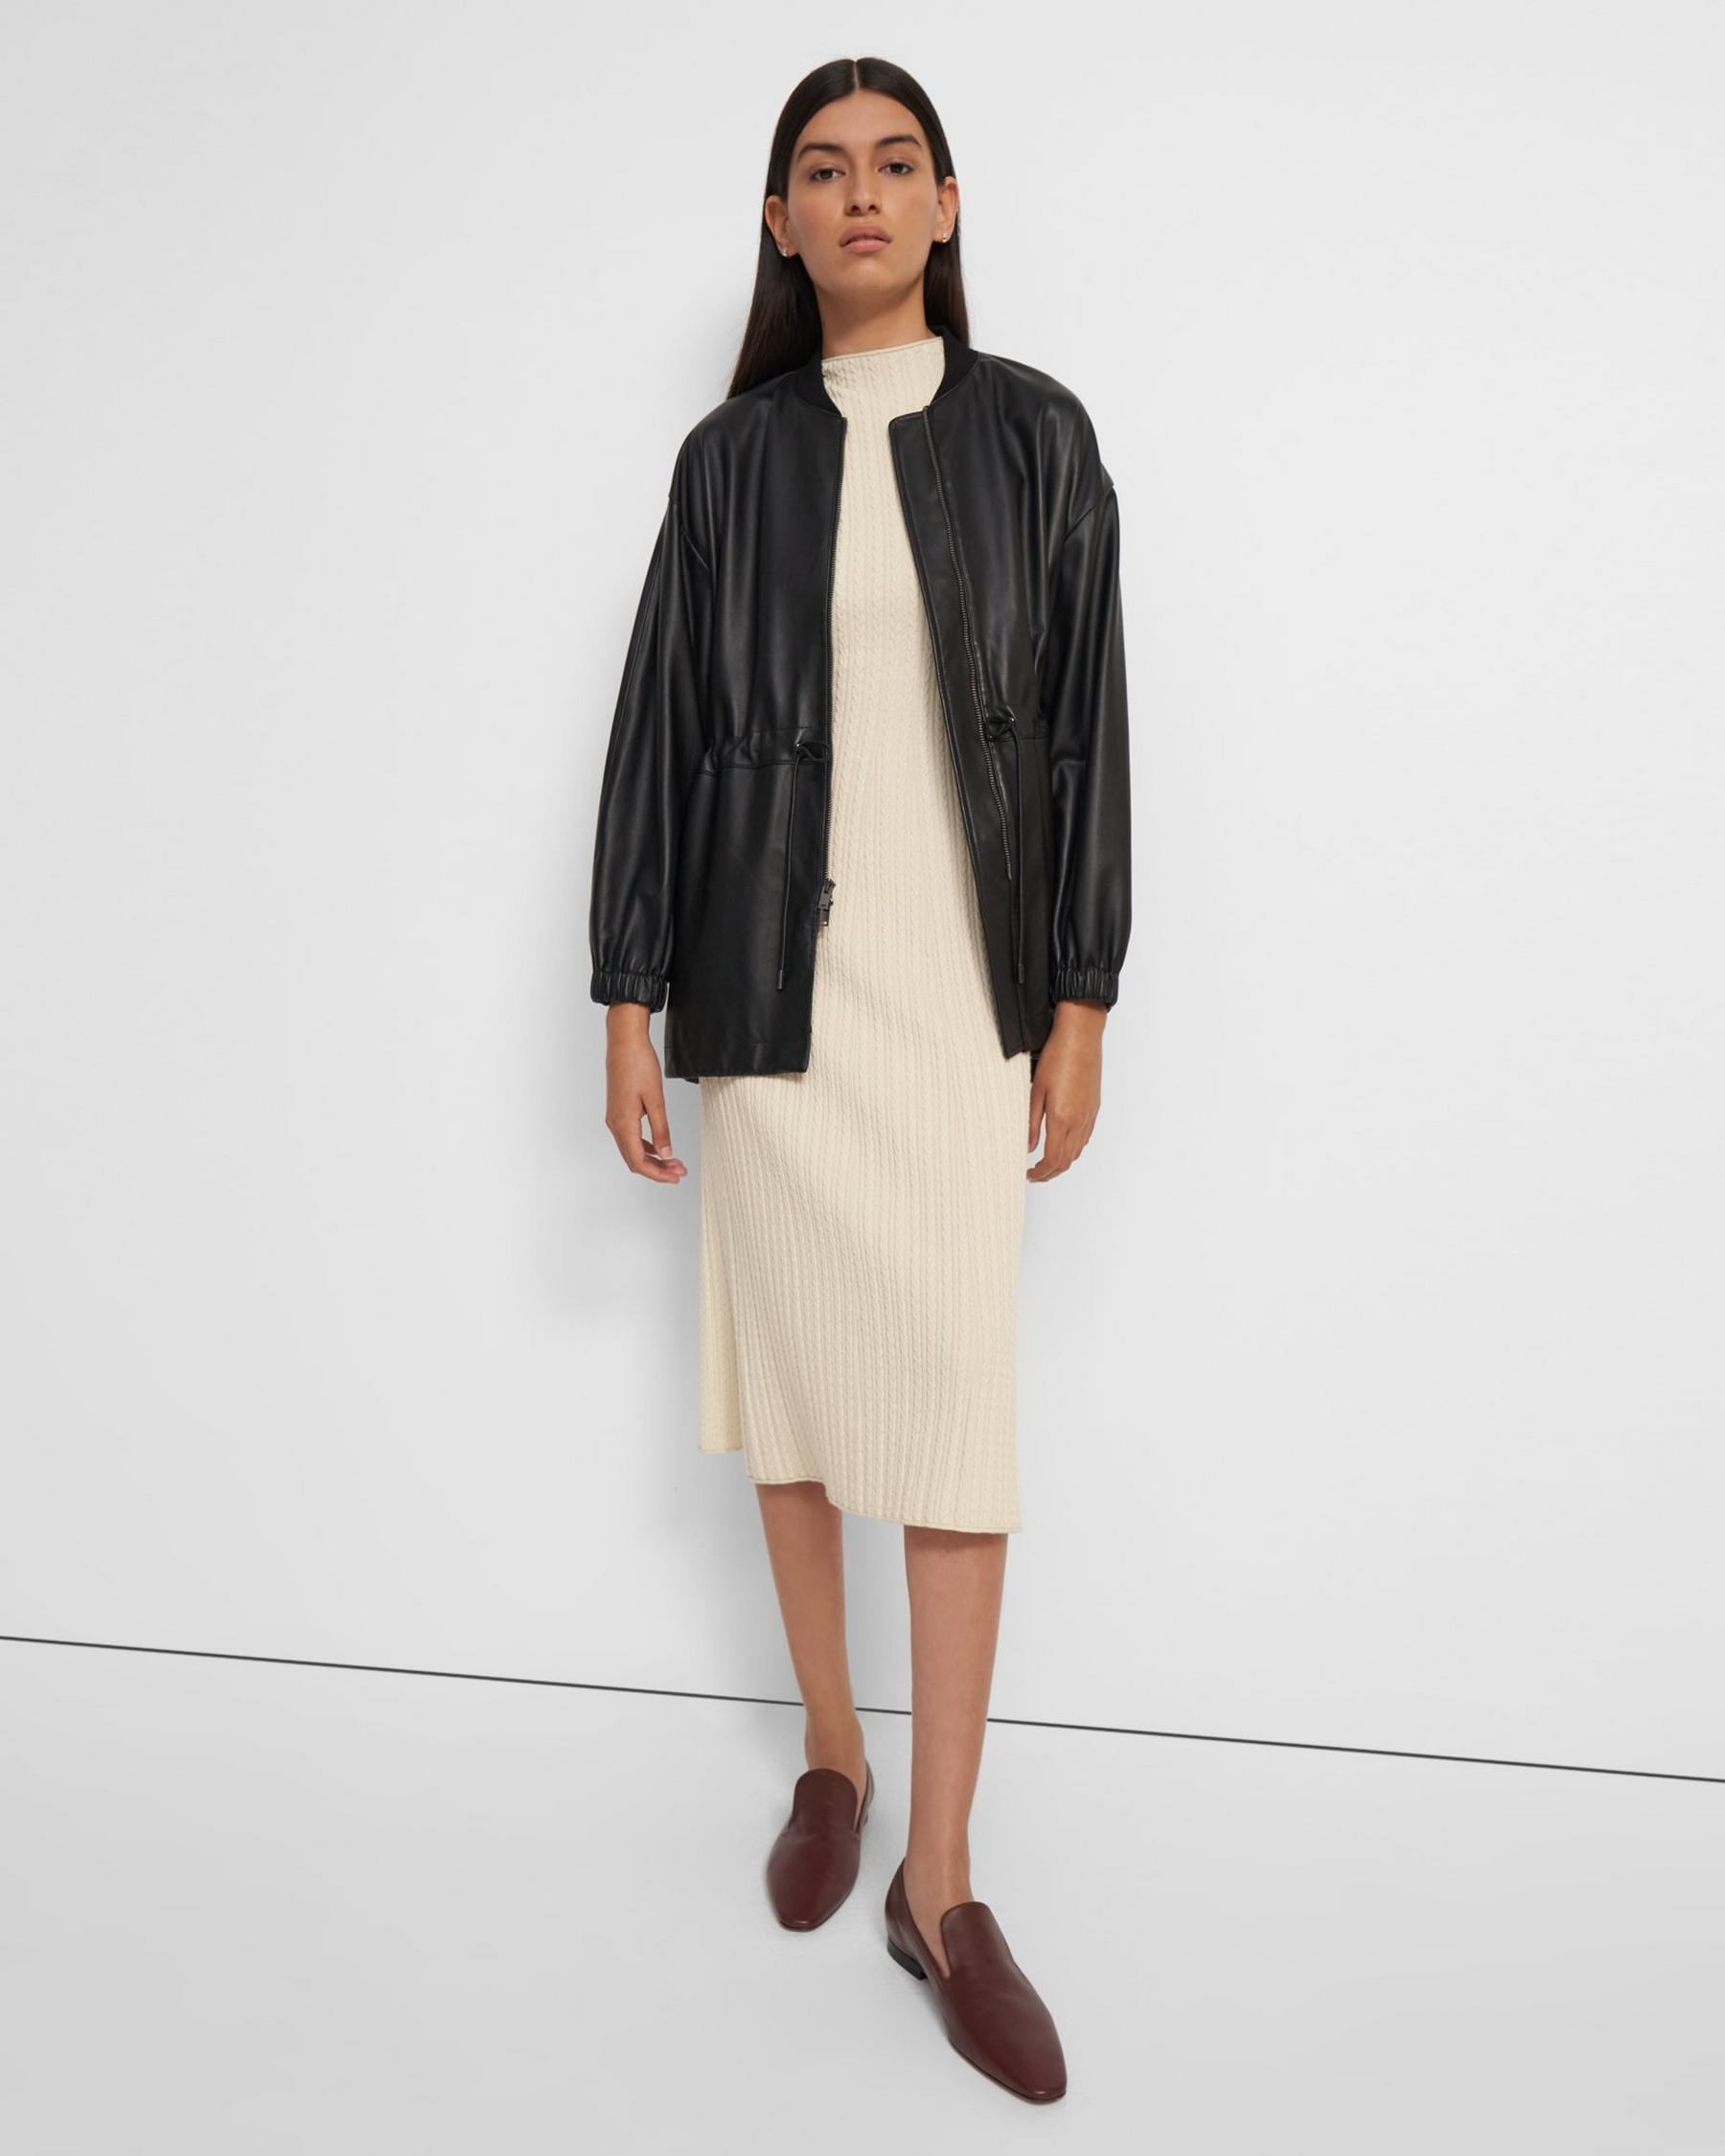 Anorak Jacket in Leather